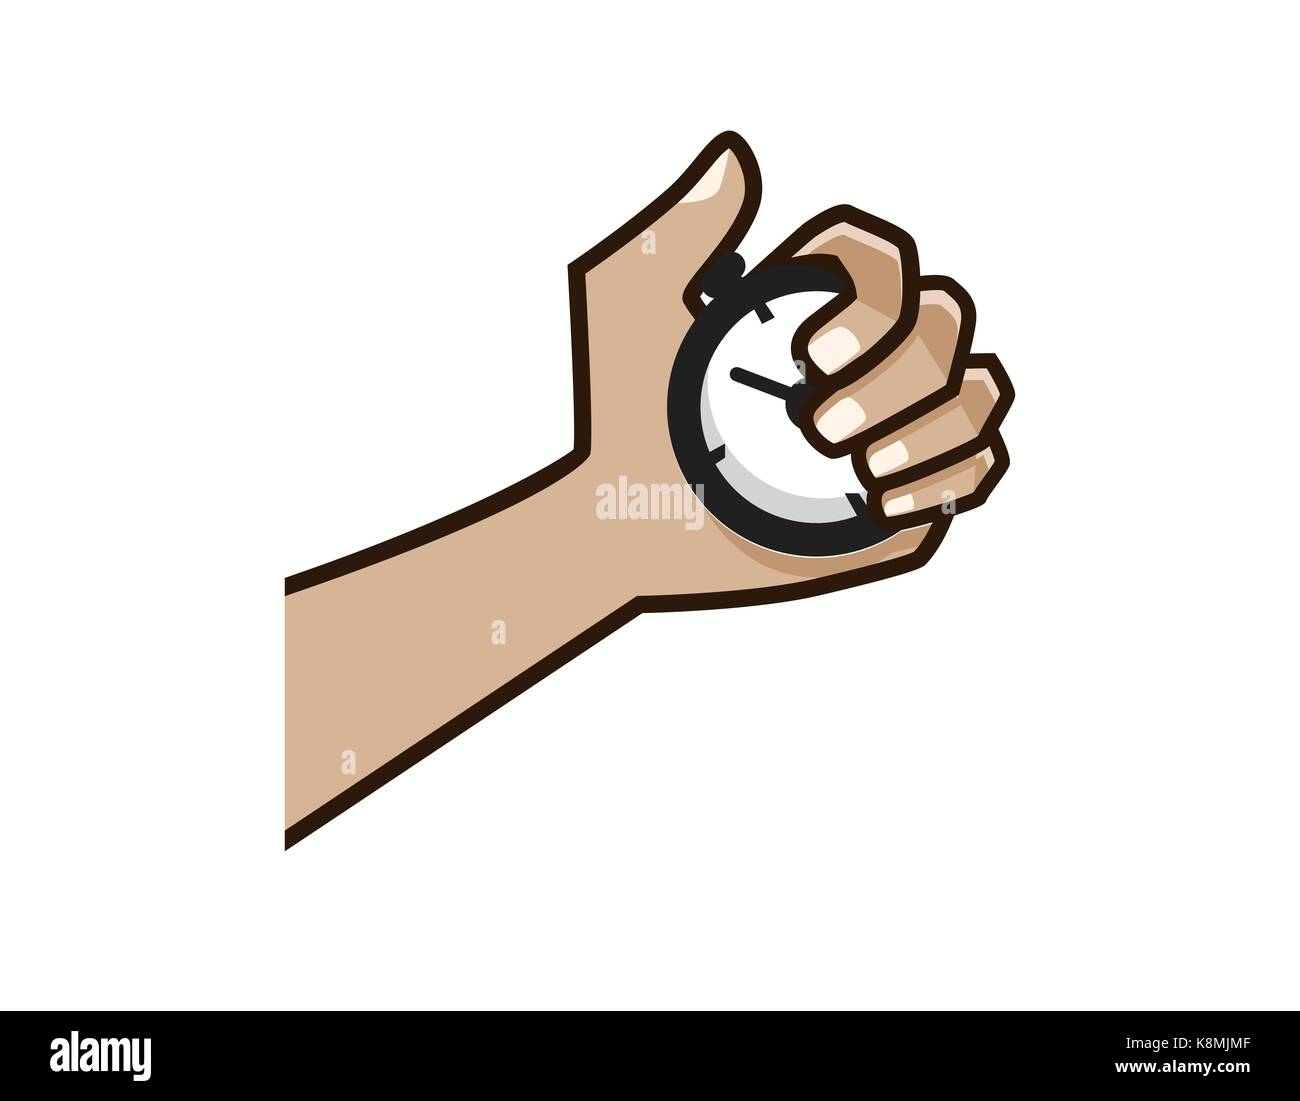 hands holds a timer with bold lines, illustration design, isolated on white background. Stock Vector